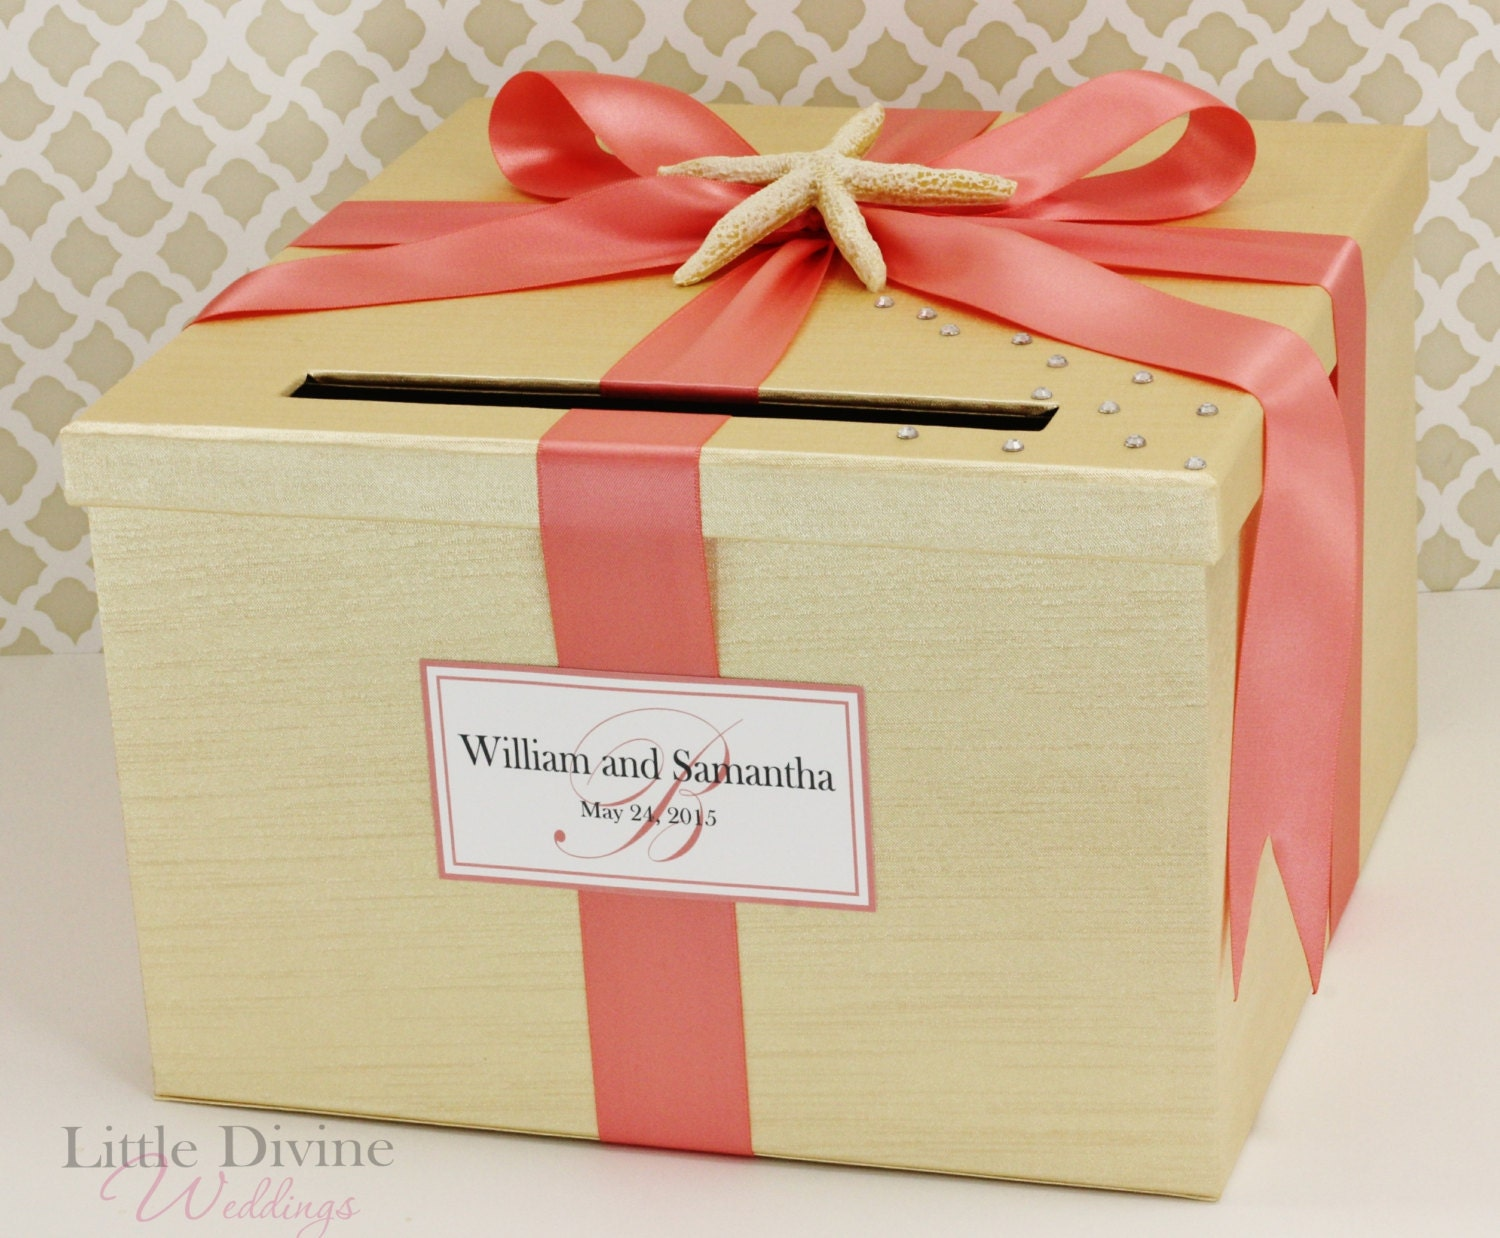 Wedding Gift Card Holder Beach Theme : Wedding Card Box Champagne Gold and Coral Starsh Beach Theme